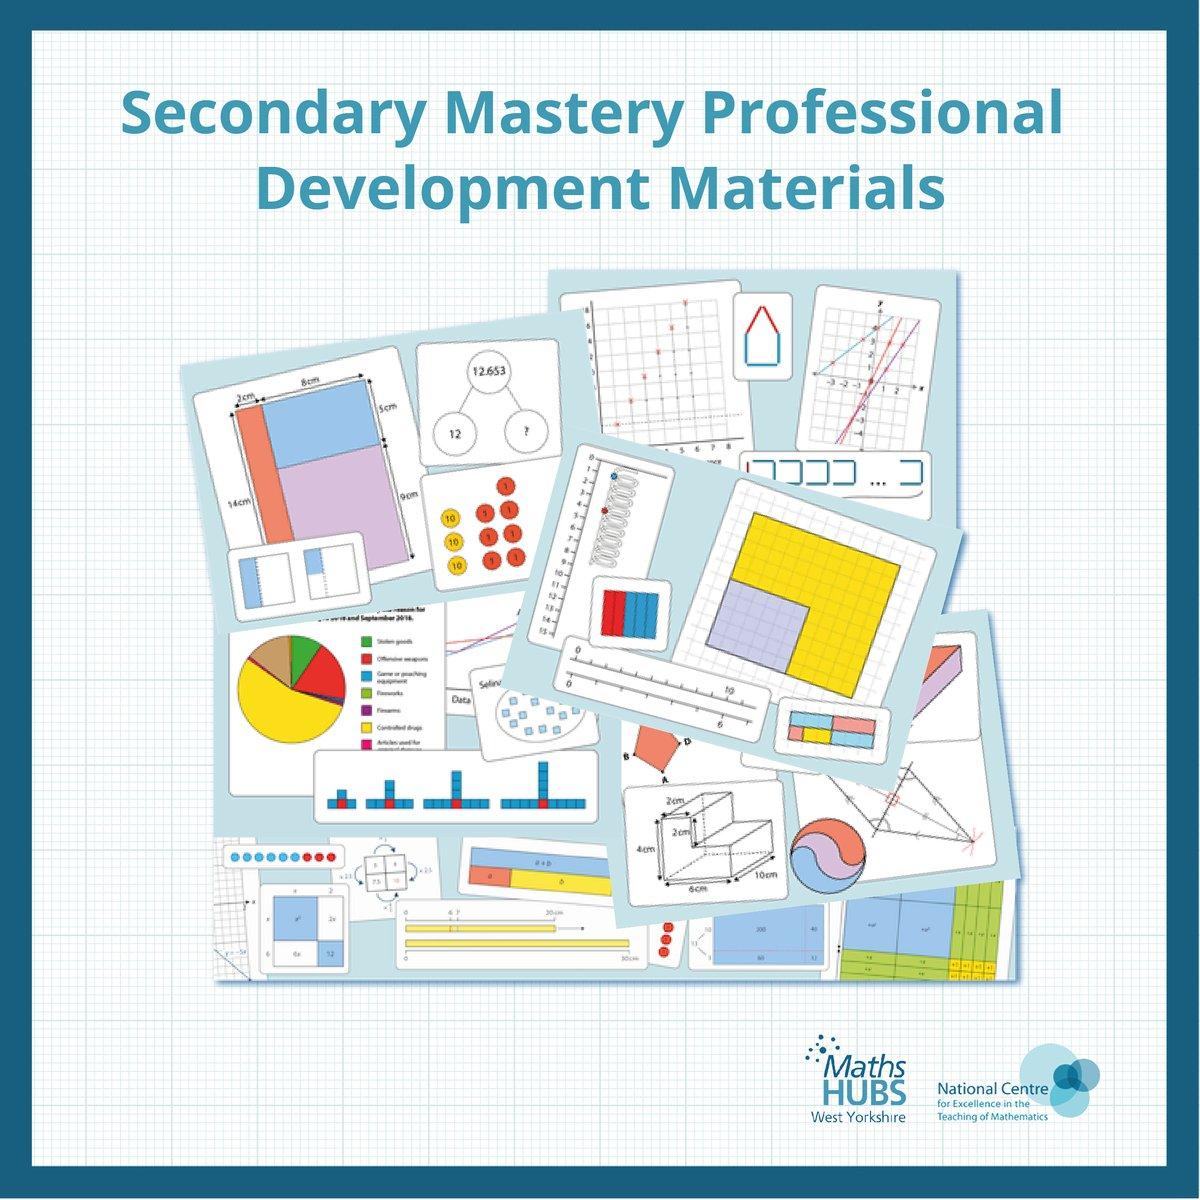 🔹 The @NCETM have worked with classroom-based teachers within the Maths Hubs network to produce a range of #masterymaterials. These offer a detailed description of the key themes and big ideas of the curriculum! 🔹 Read more about them here: https://t.co/fTG7AGOkvX   #MathsHub